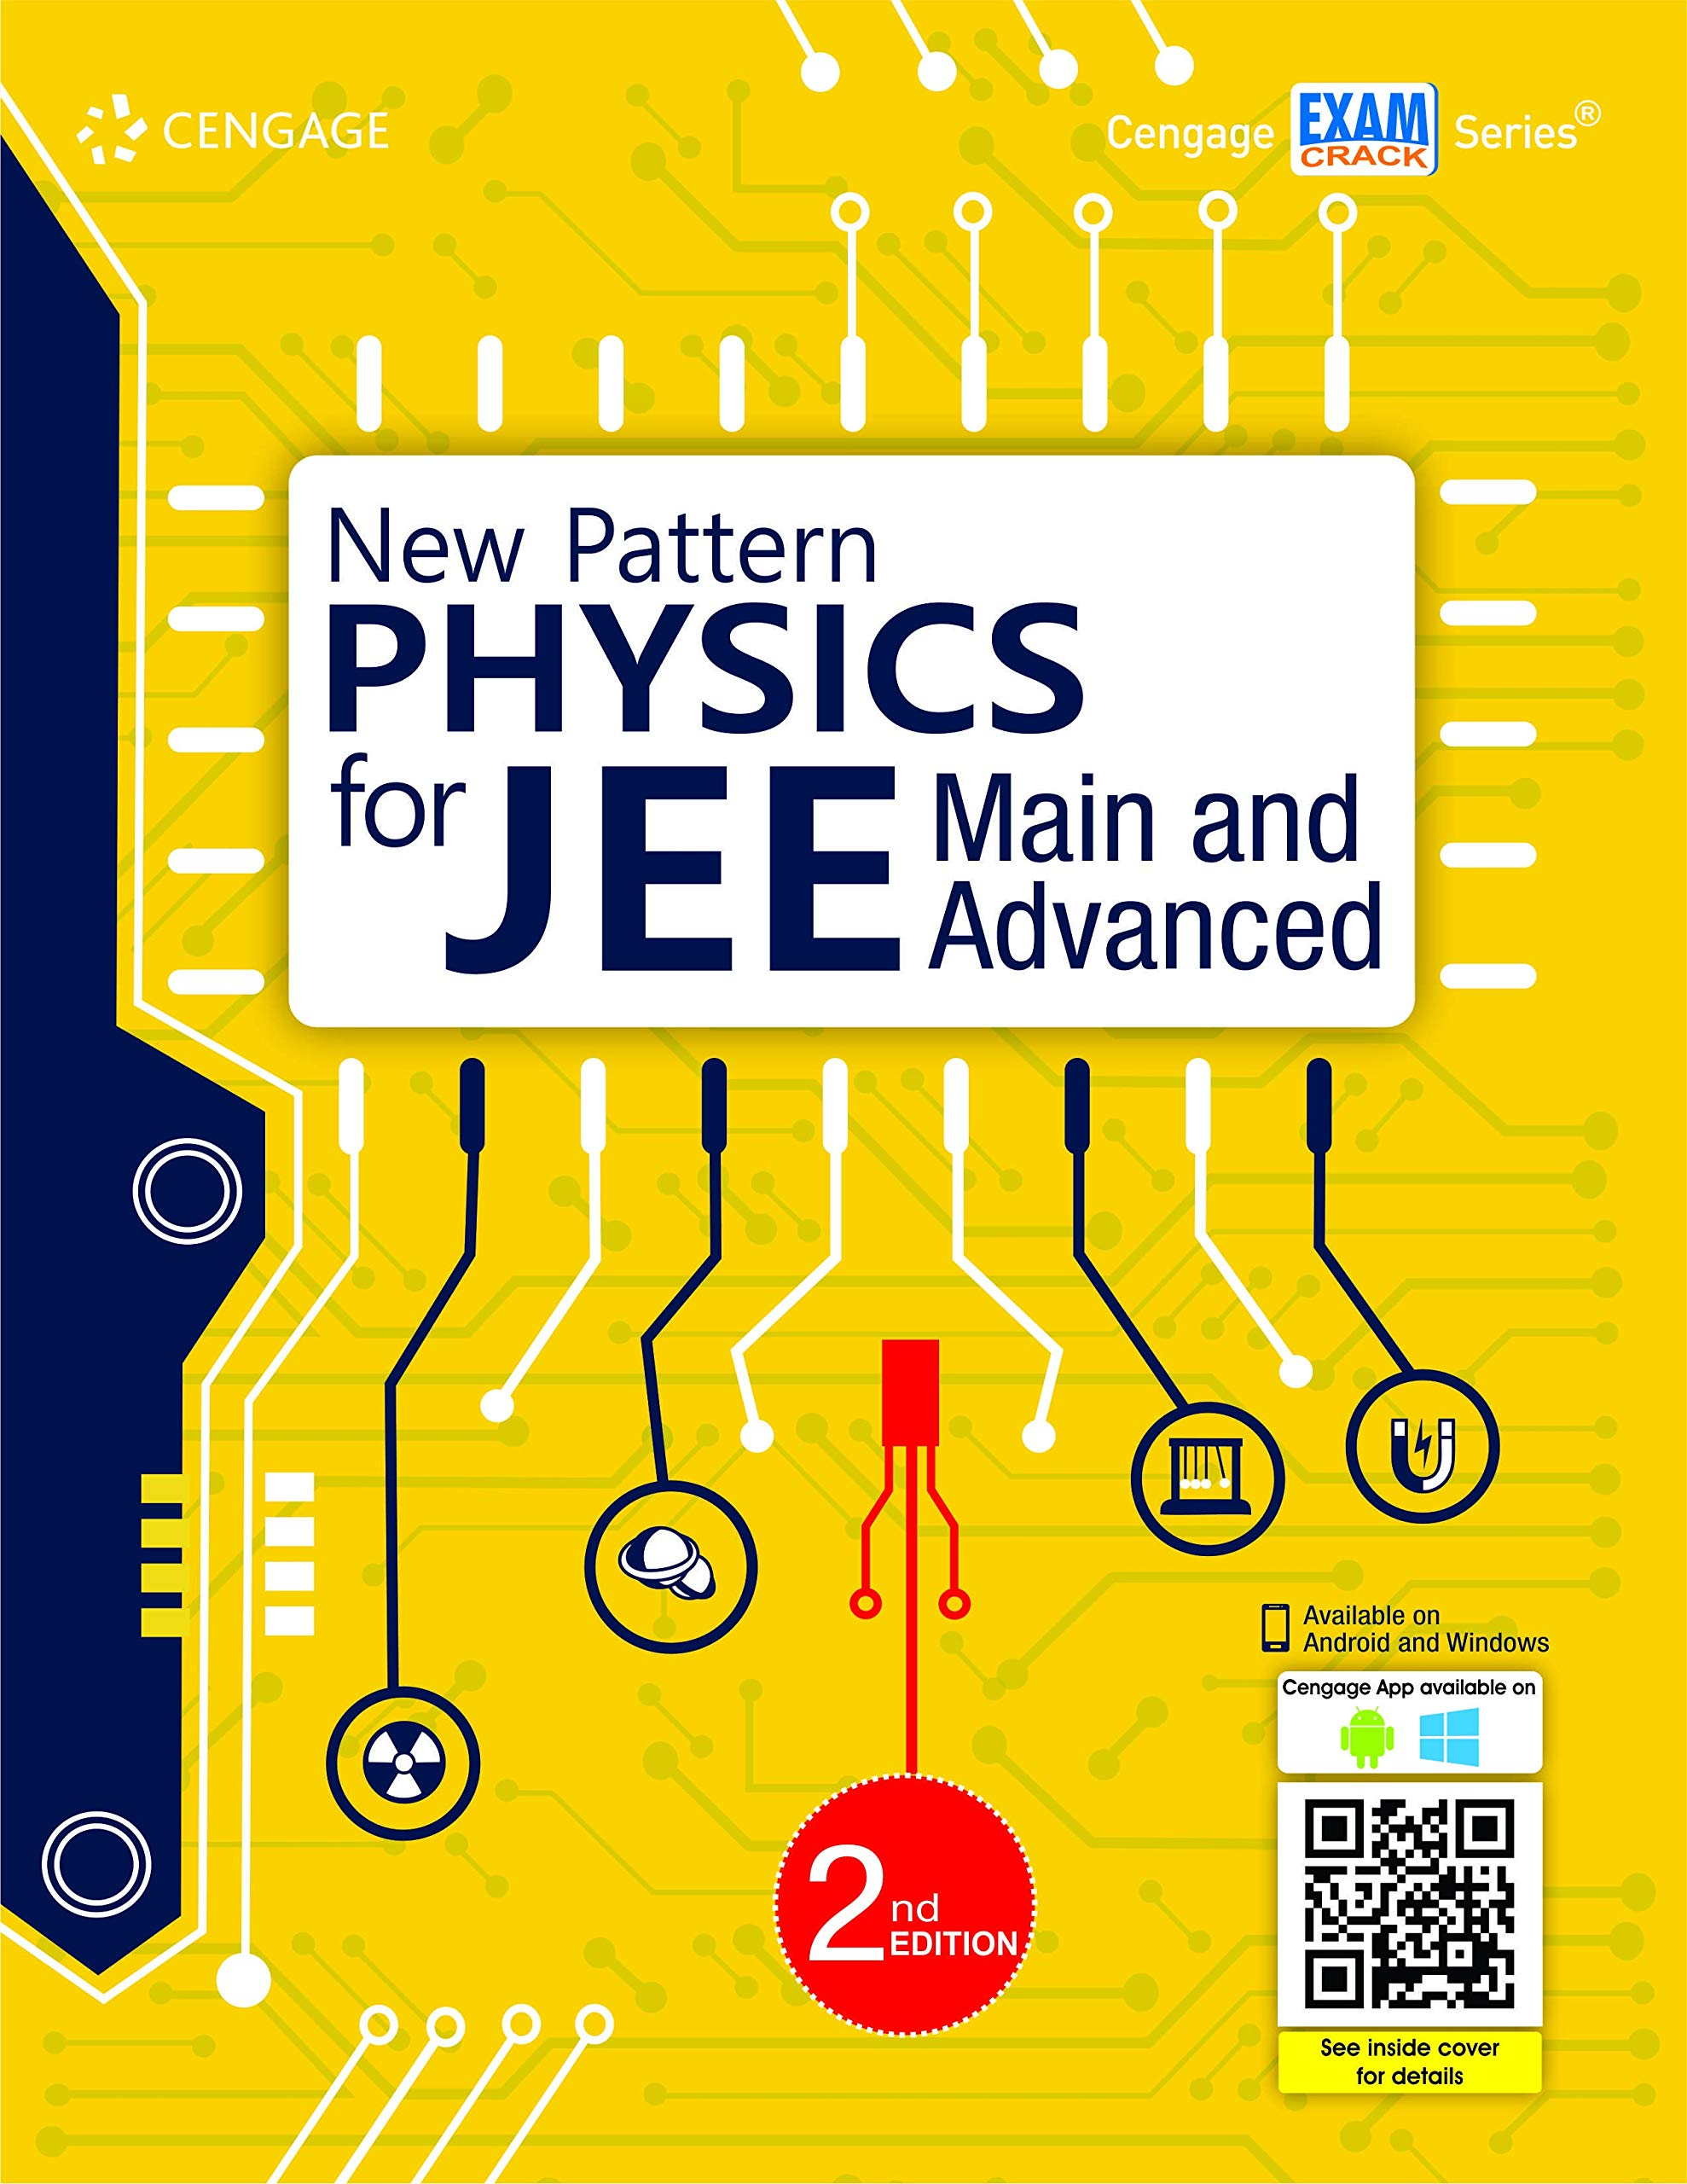 NEW PATTERN PHYSICS FOR JEE MAIN AND